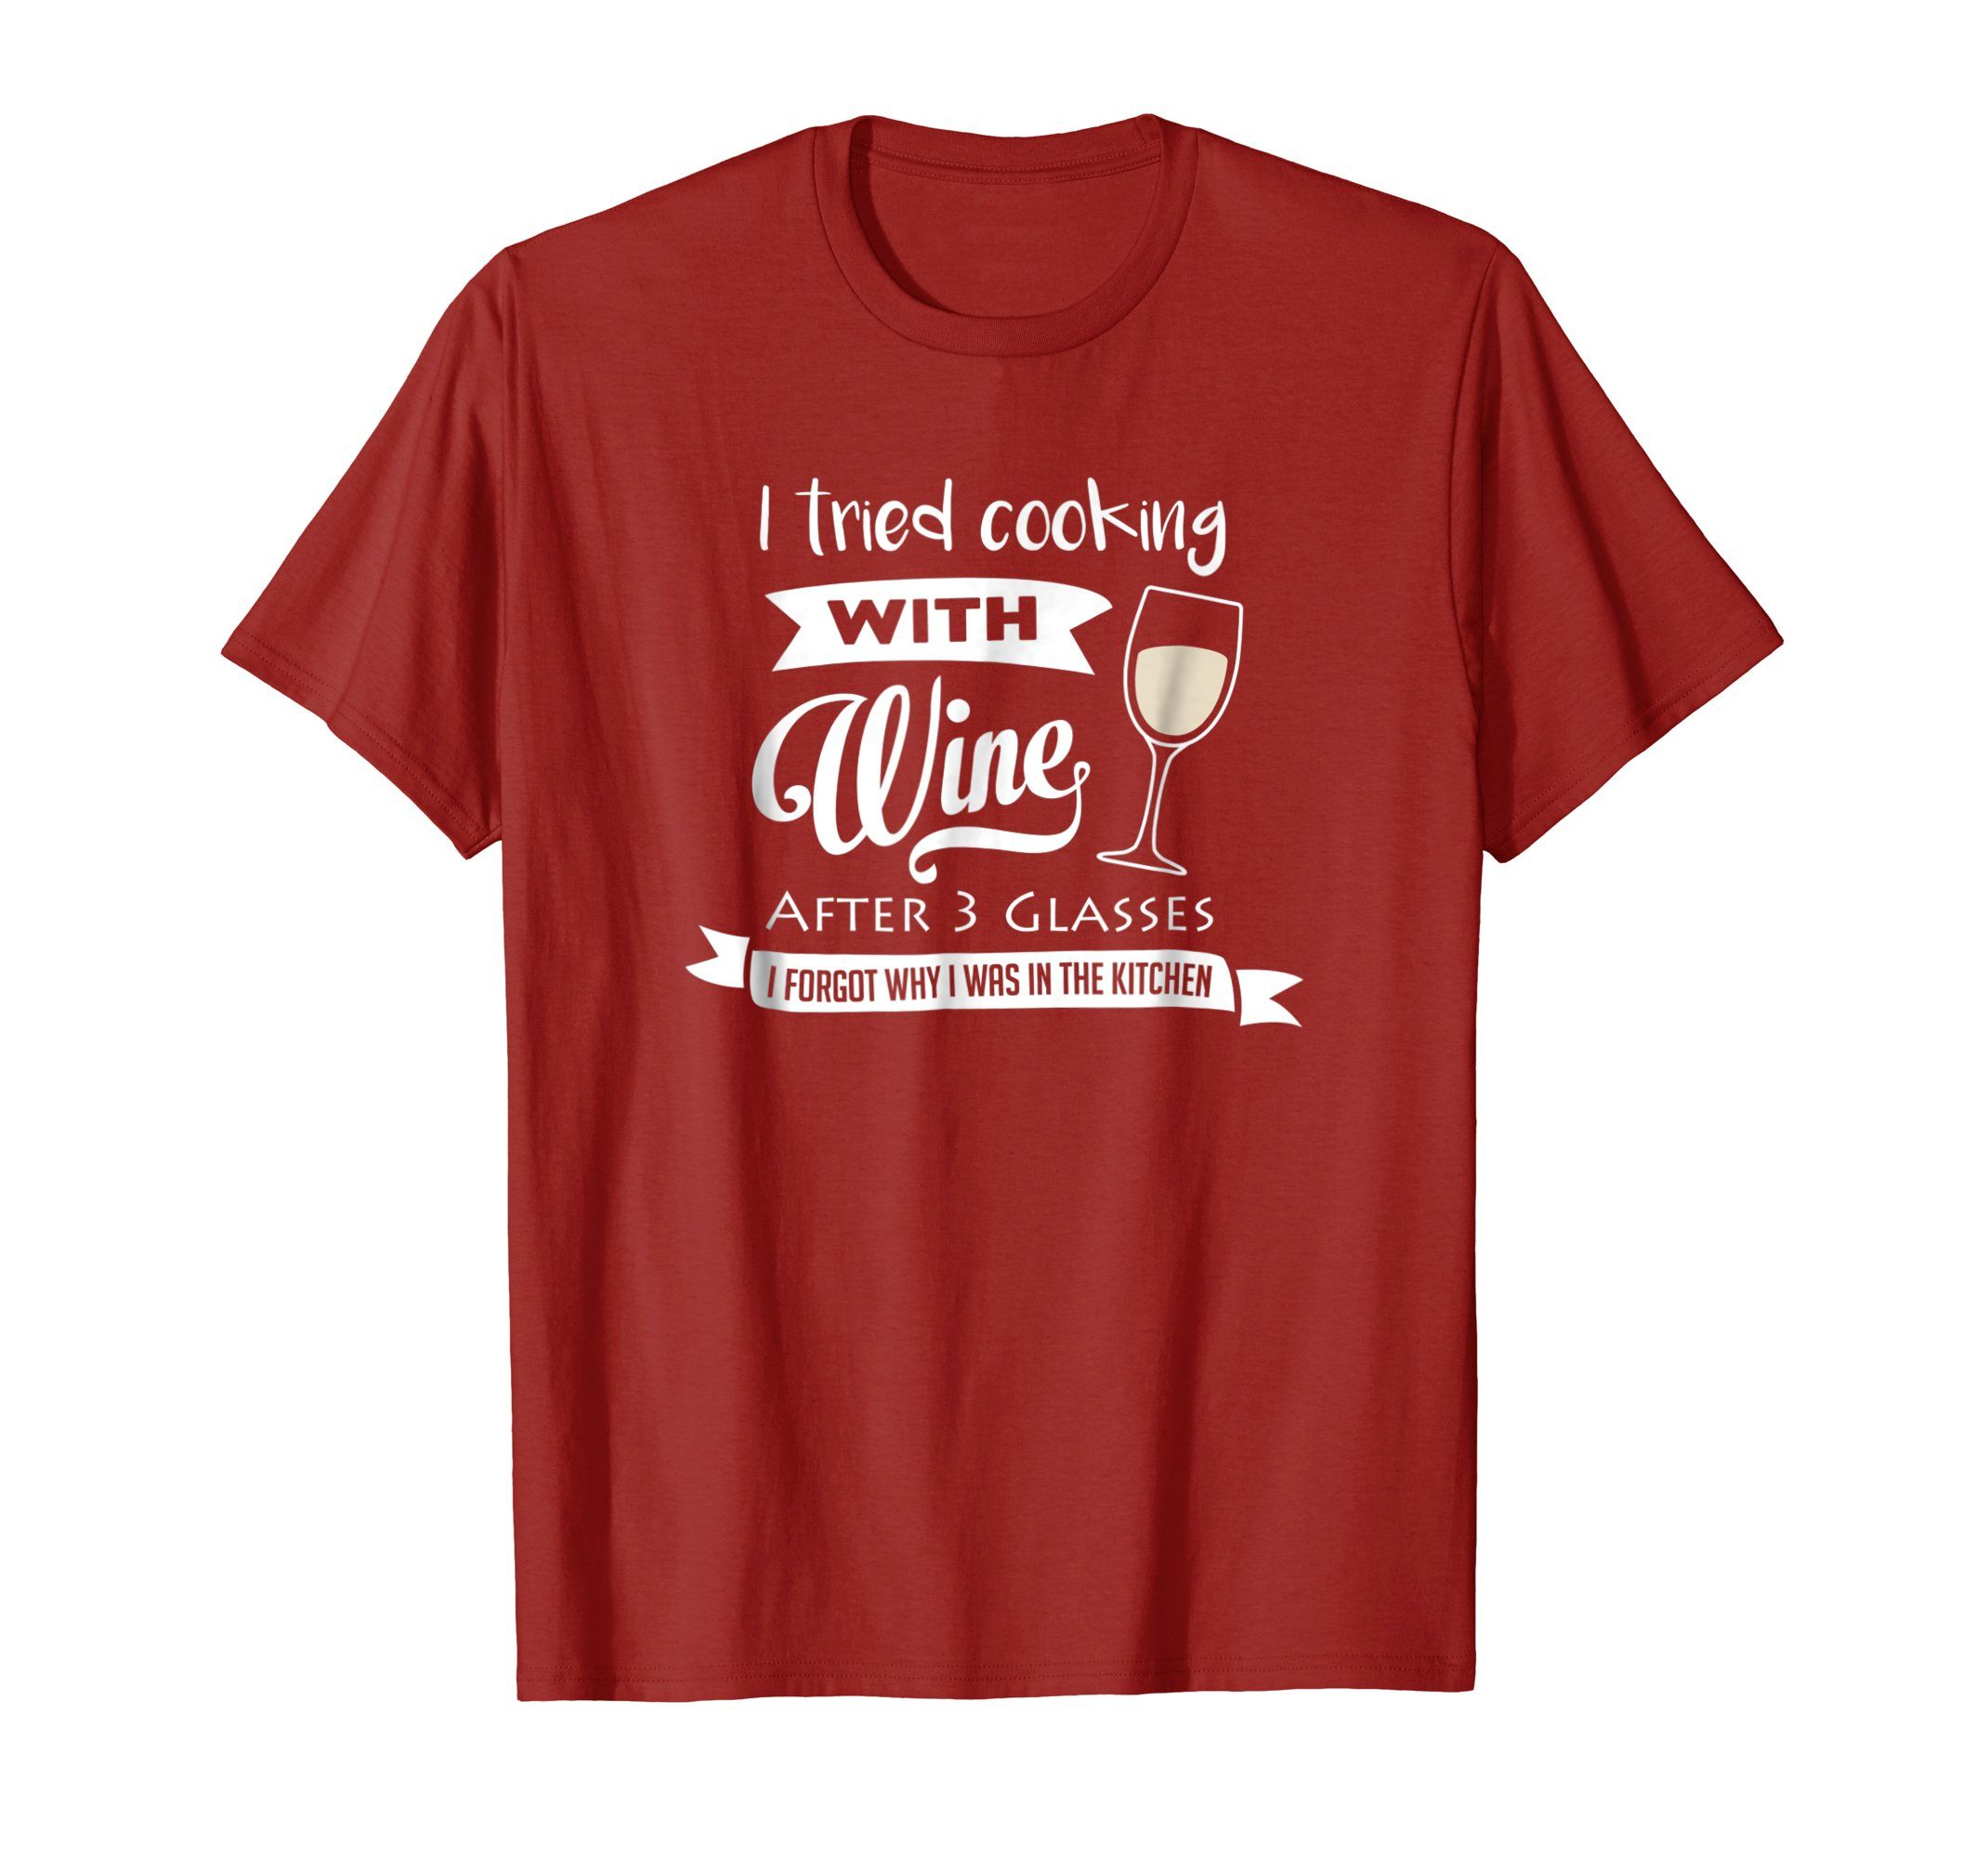 I Tried Cooking With Wine After Three Glasses I Forgot Why I Was In The Kitchen T Shirt Perfect Humor Tee Gift For Wine And Co T Shirt Funny Shirts Shirts